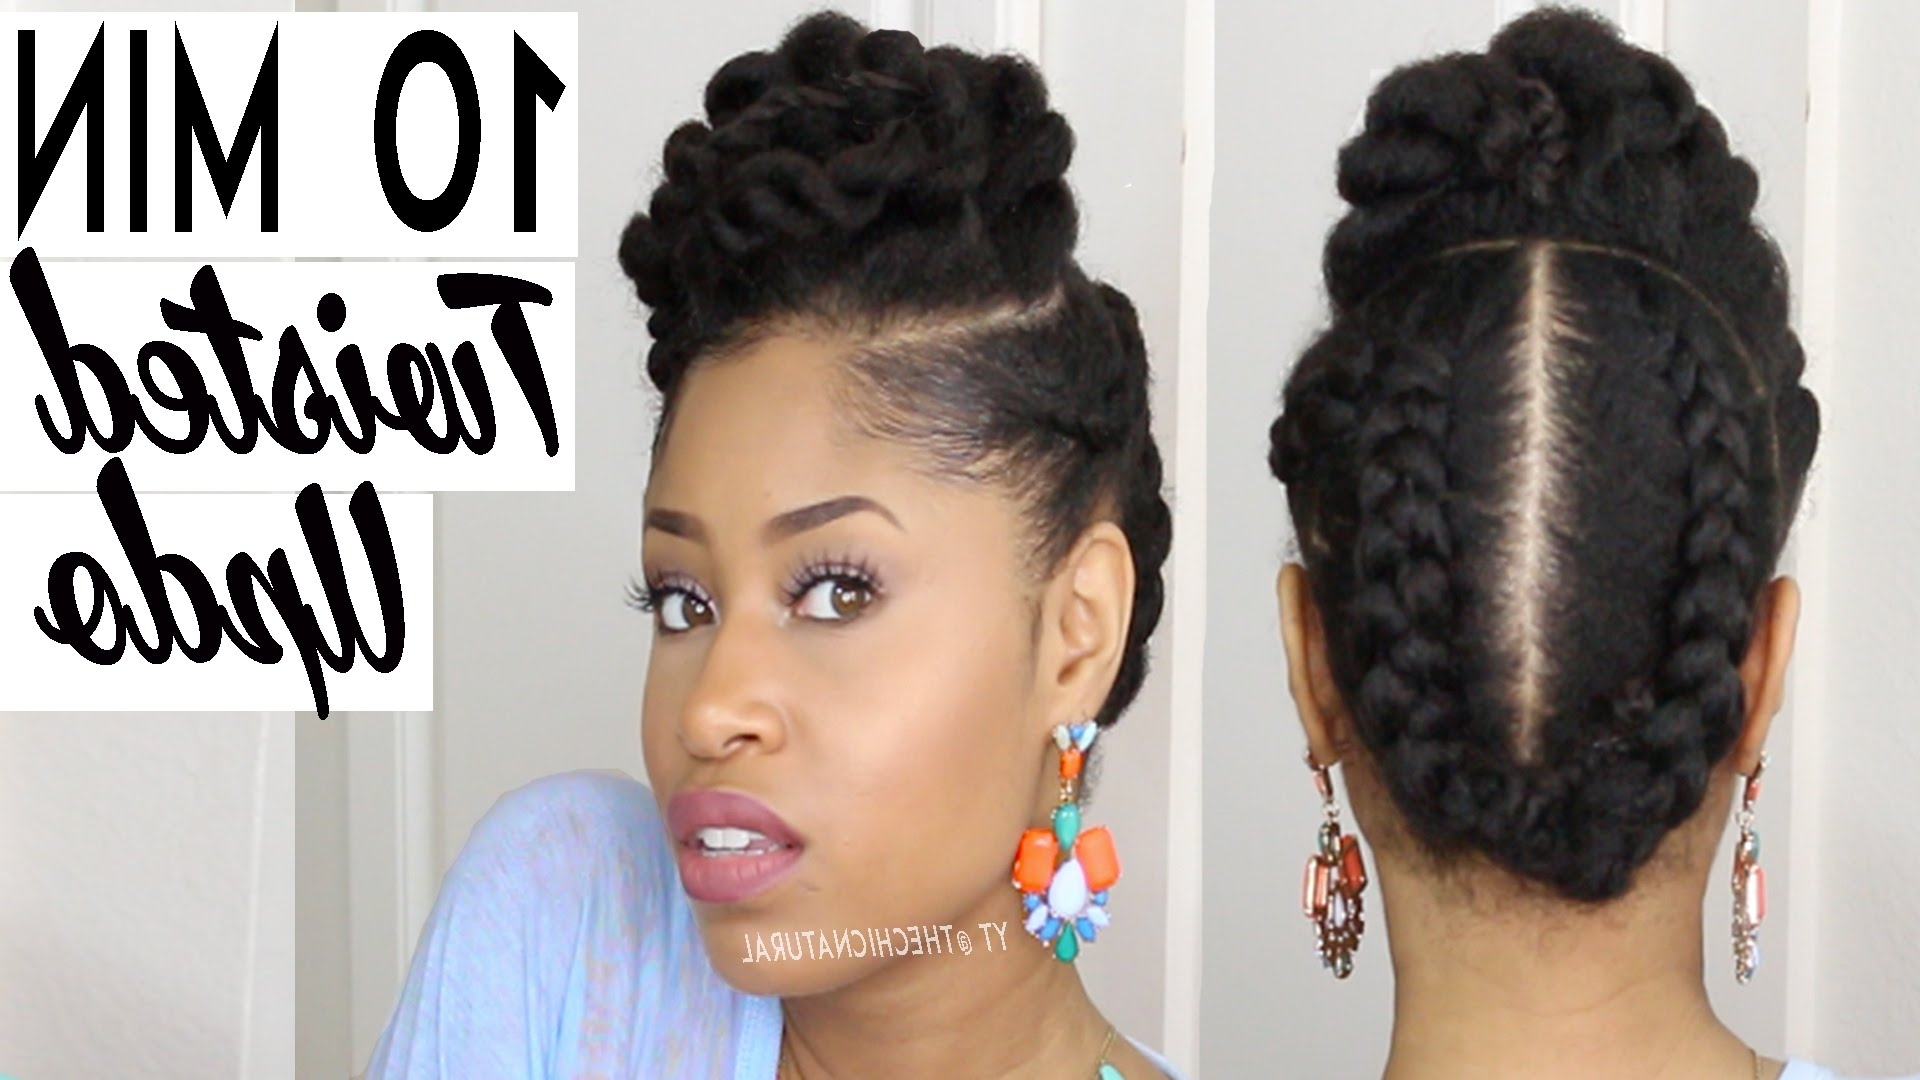 Photo Gallery Of Updos For Long Hair Black Hair Viewing 5 Of 15 Photos